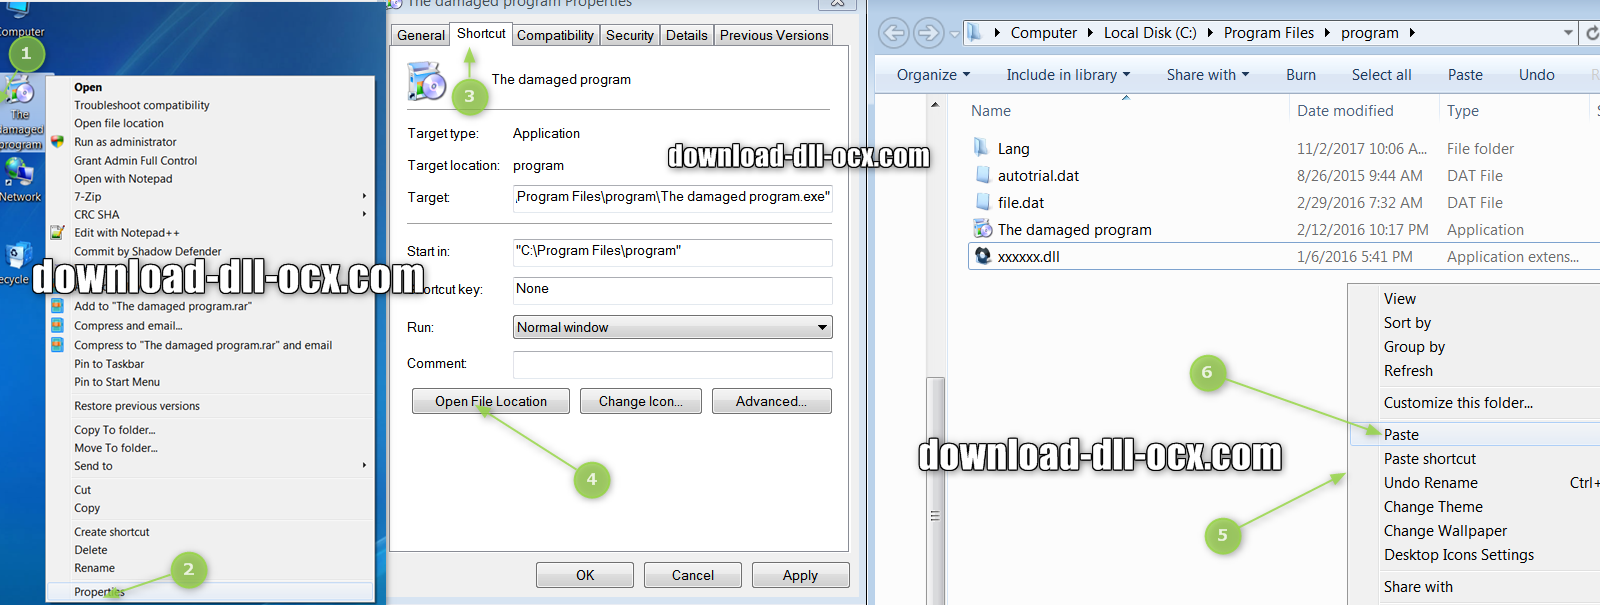 how to install Rasapi16.dll file? for fix missing